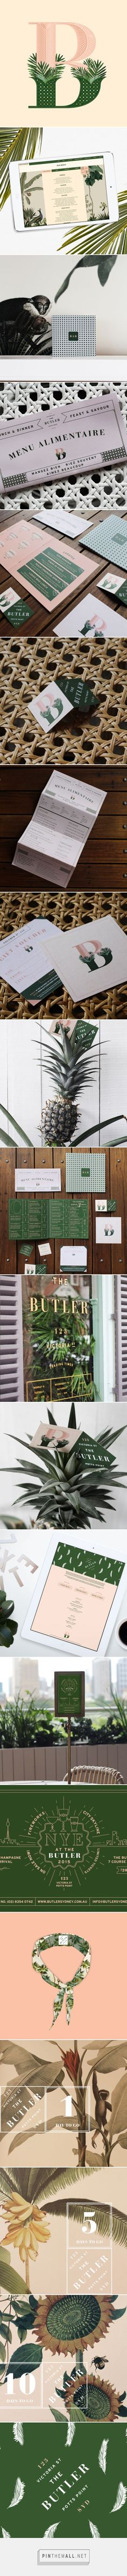 Brand identity inspiration The Butler Potts Point Restaurant Branding and Menu Design by Julia Jacque Brand Identity Design, Corporate Design, Graphic Design Typography, Branding Design, Logo Design, Deco Restaurant, Restaurant Branding, Restaurant Design, Hotel Branding